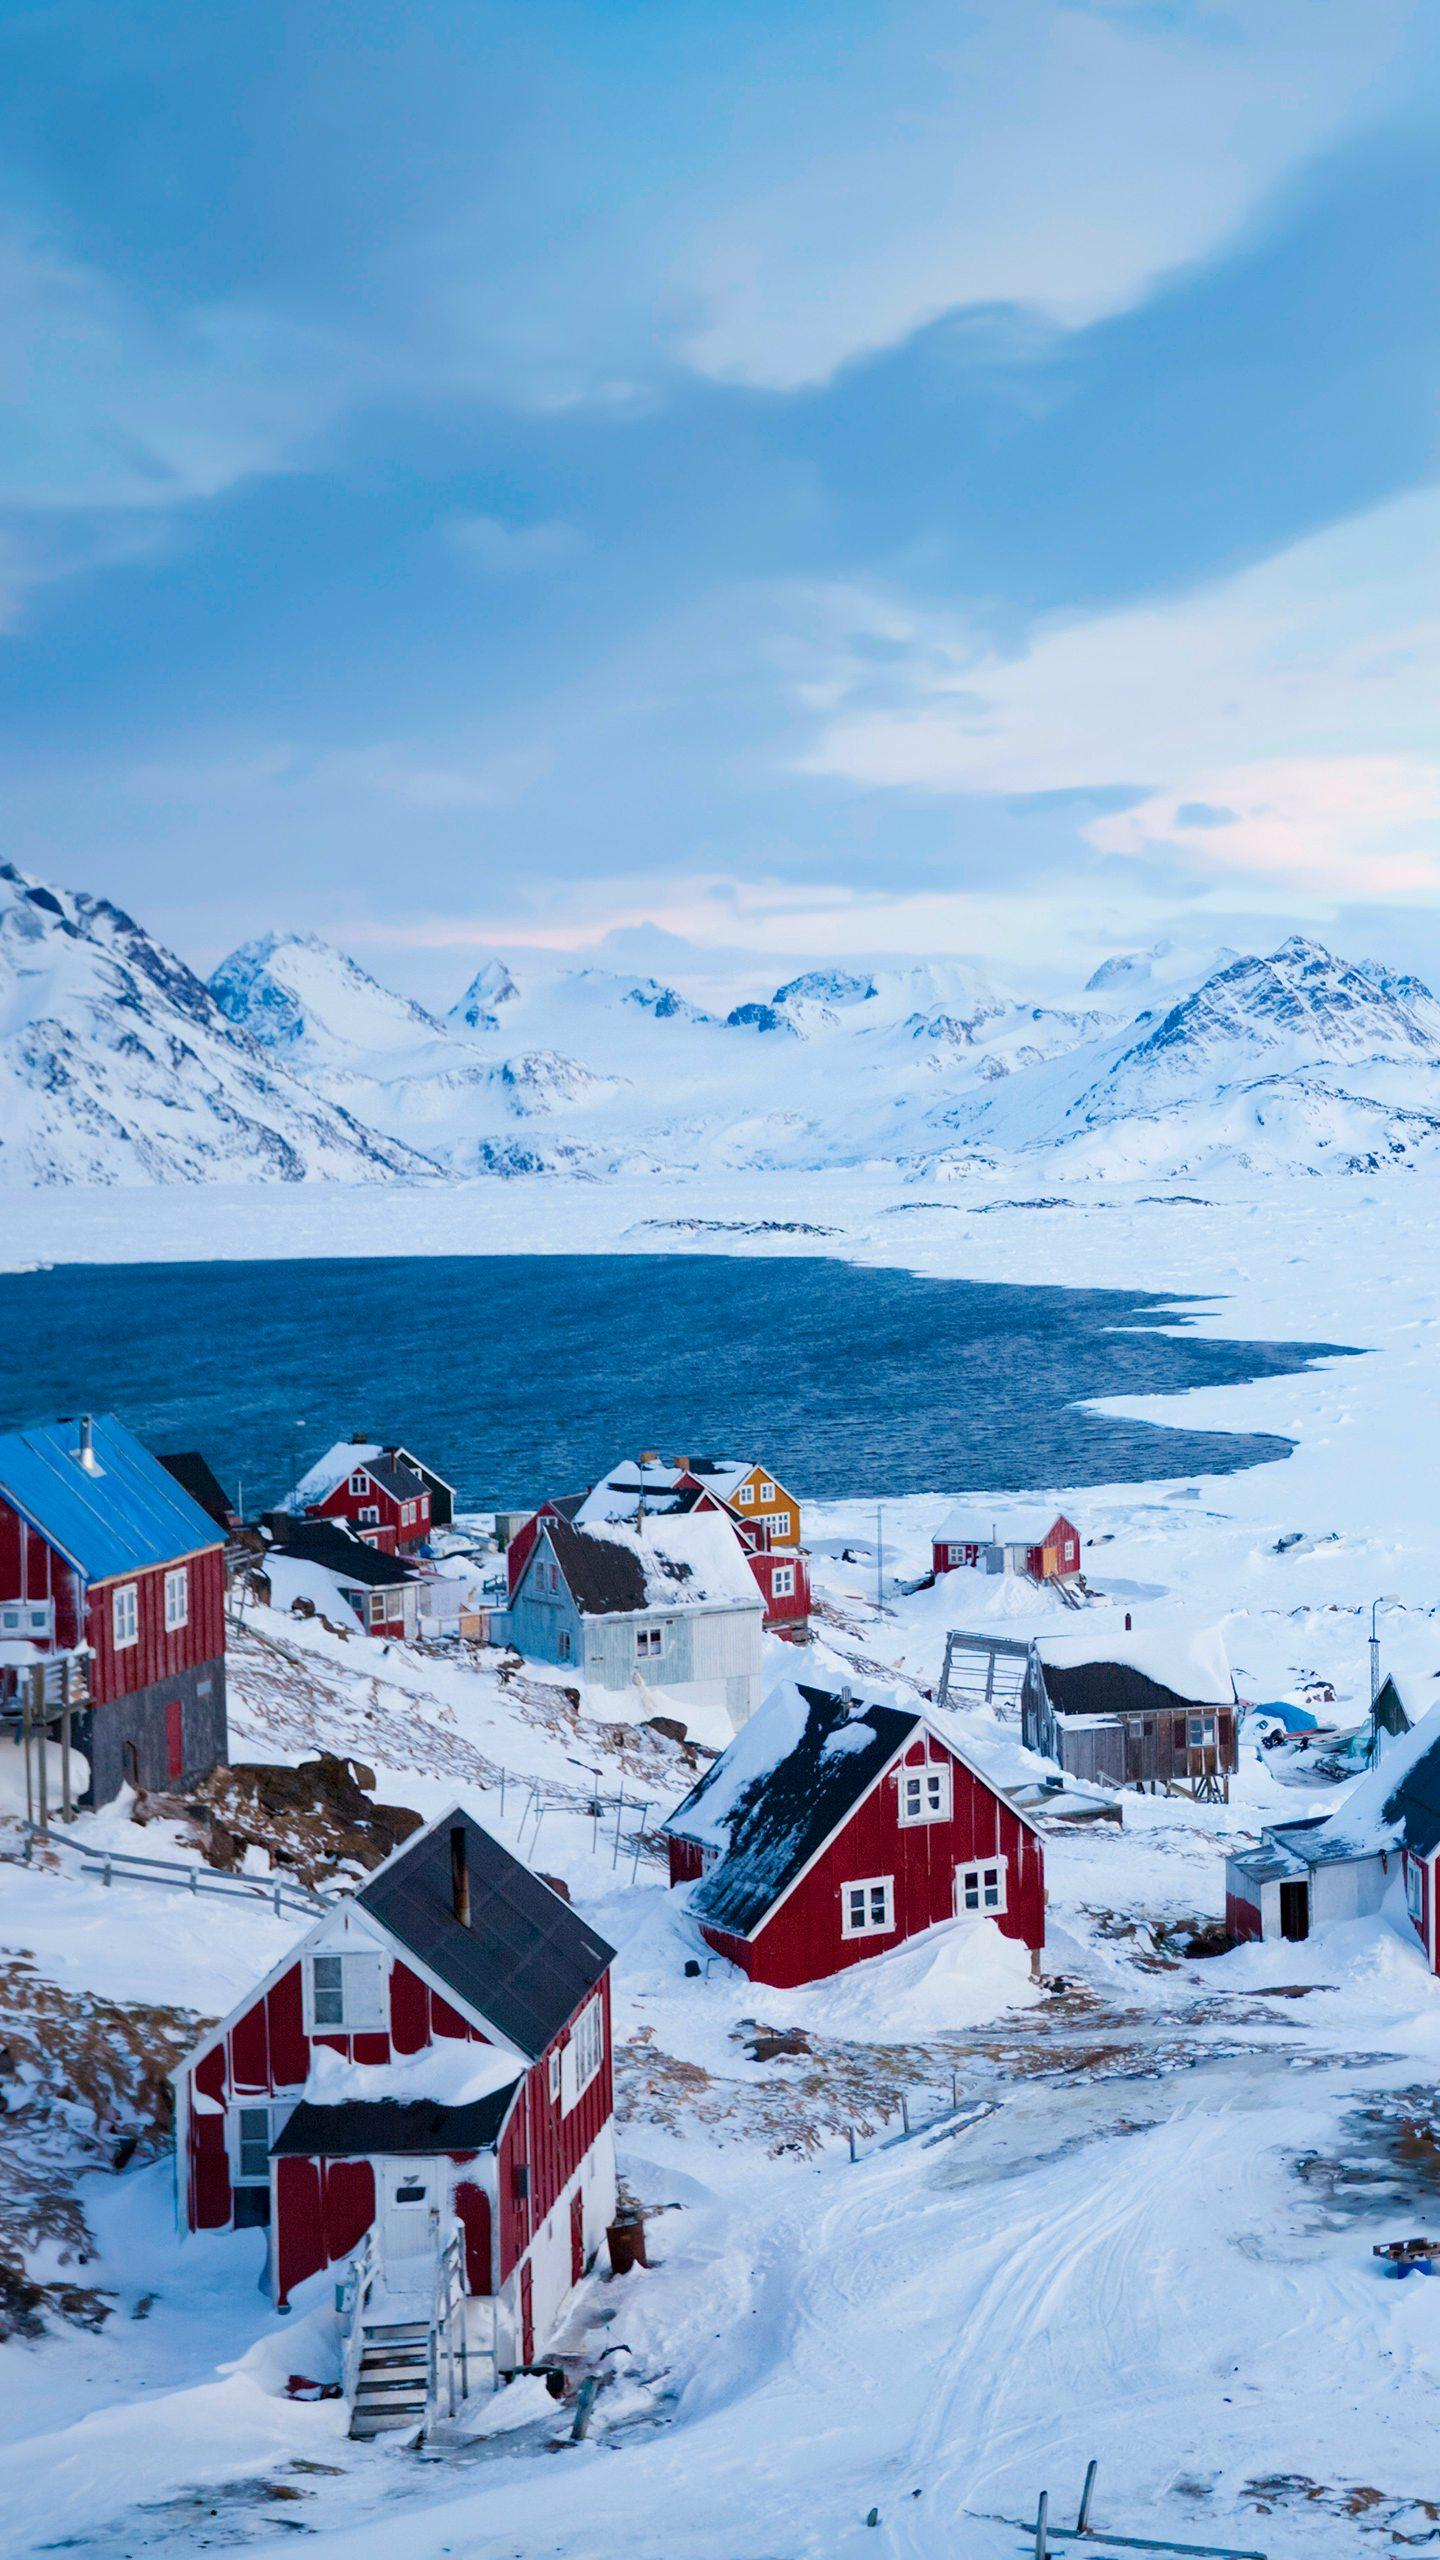 The world's largest island. Greenland is the largest island in the world. The island is cold all year round and is a typical cold climate.